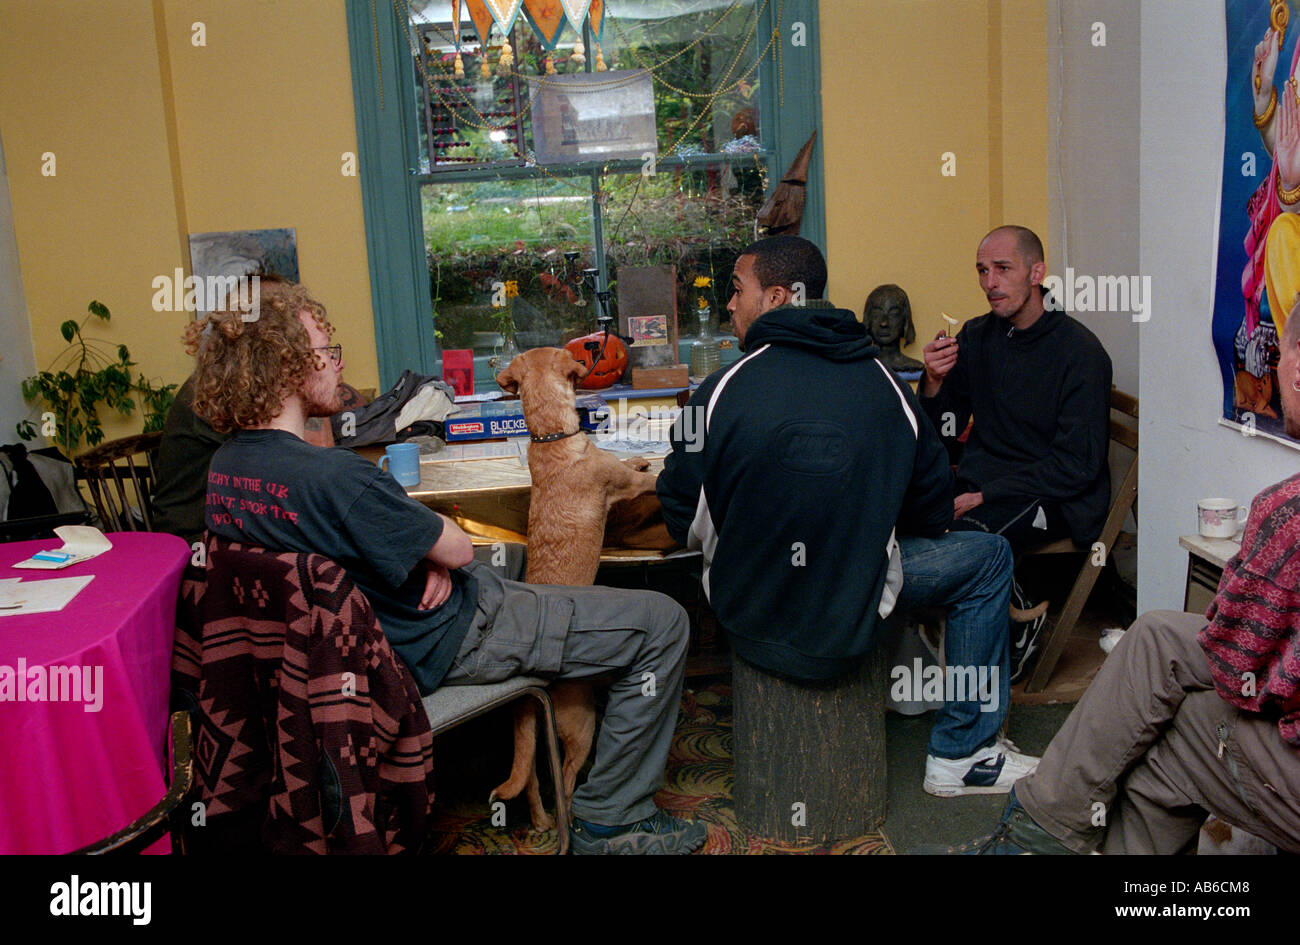 People socialising Cafe at St Agnes Place Squat Kennington South London. - Stock Image